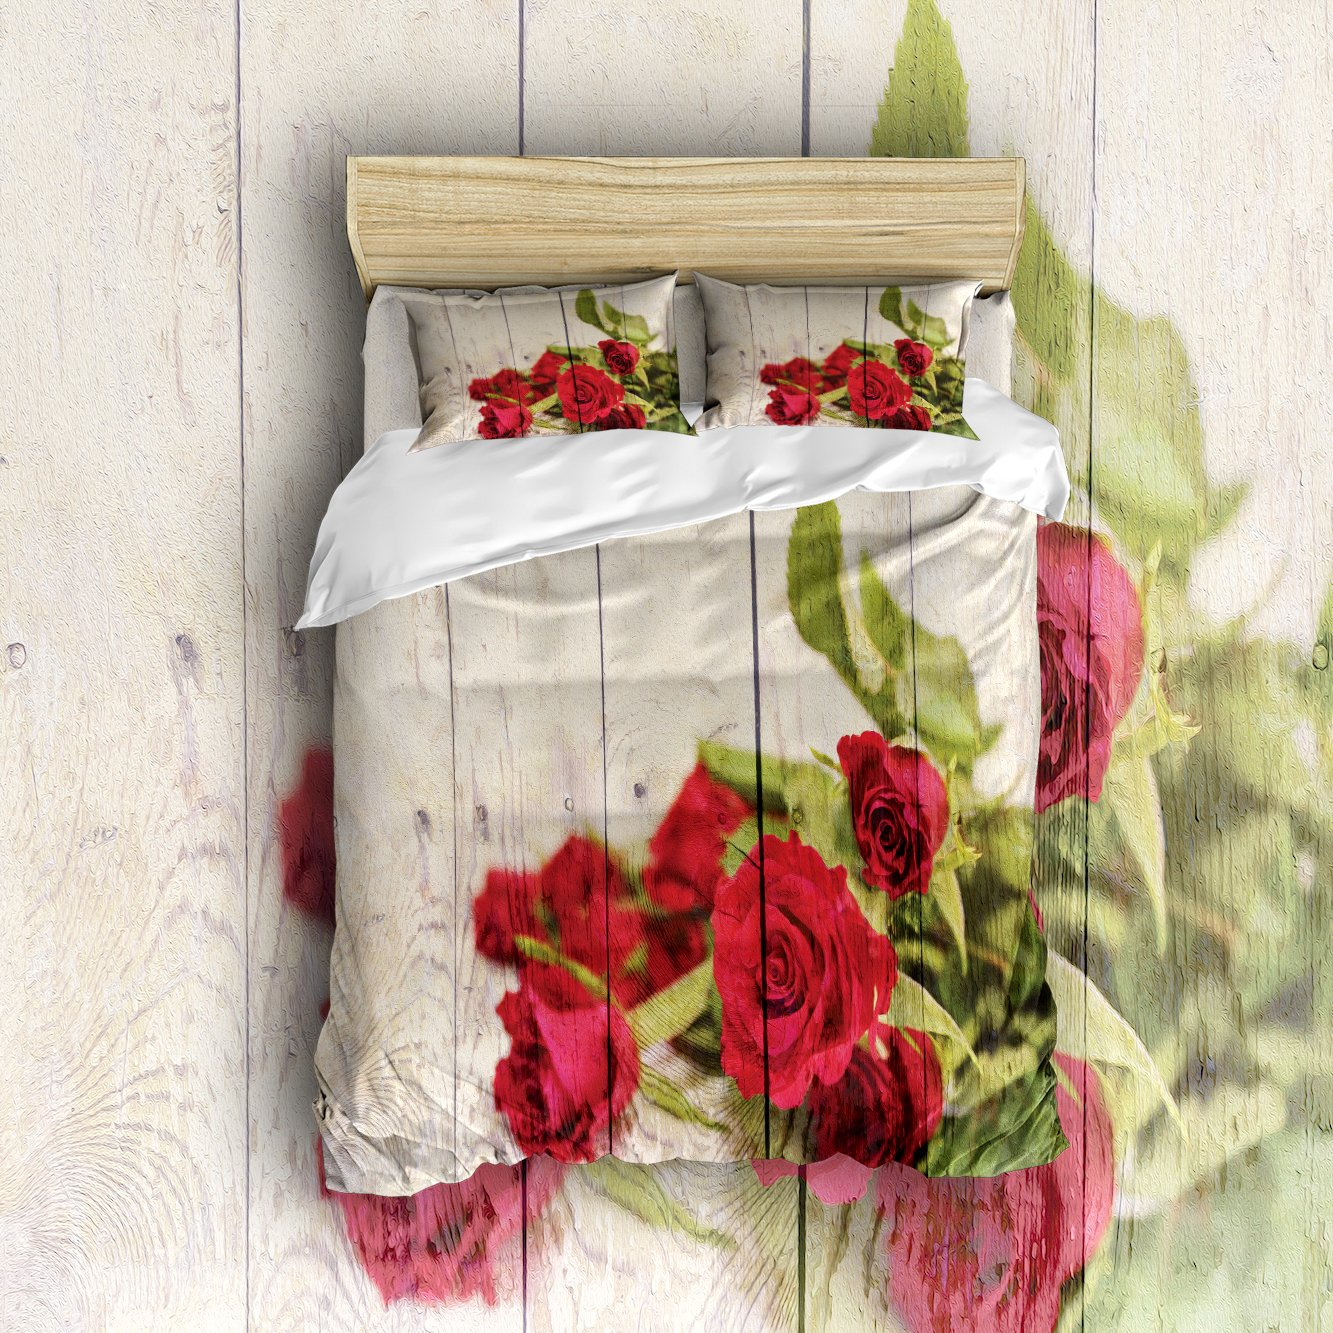 Red Rose Flower in Retro Wood Grain 4 PC Bed Sheet Set Duvet Cover Flat Sheet and 2 Pillow Cases BY MissHoney